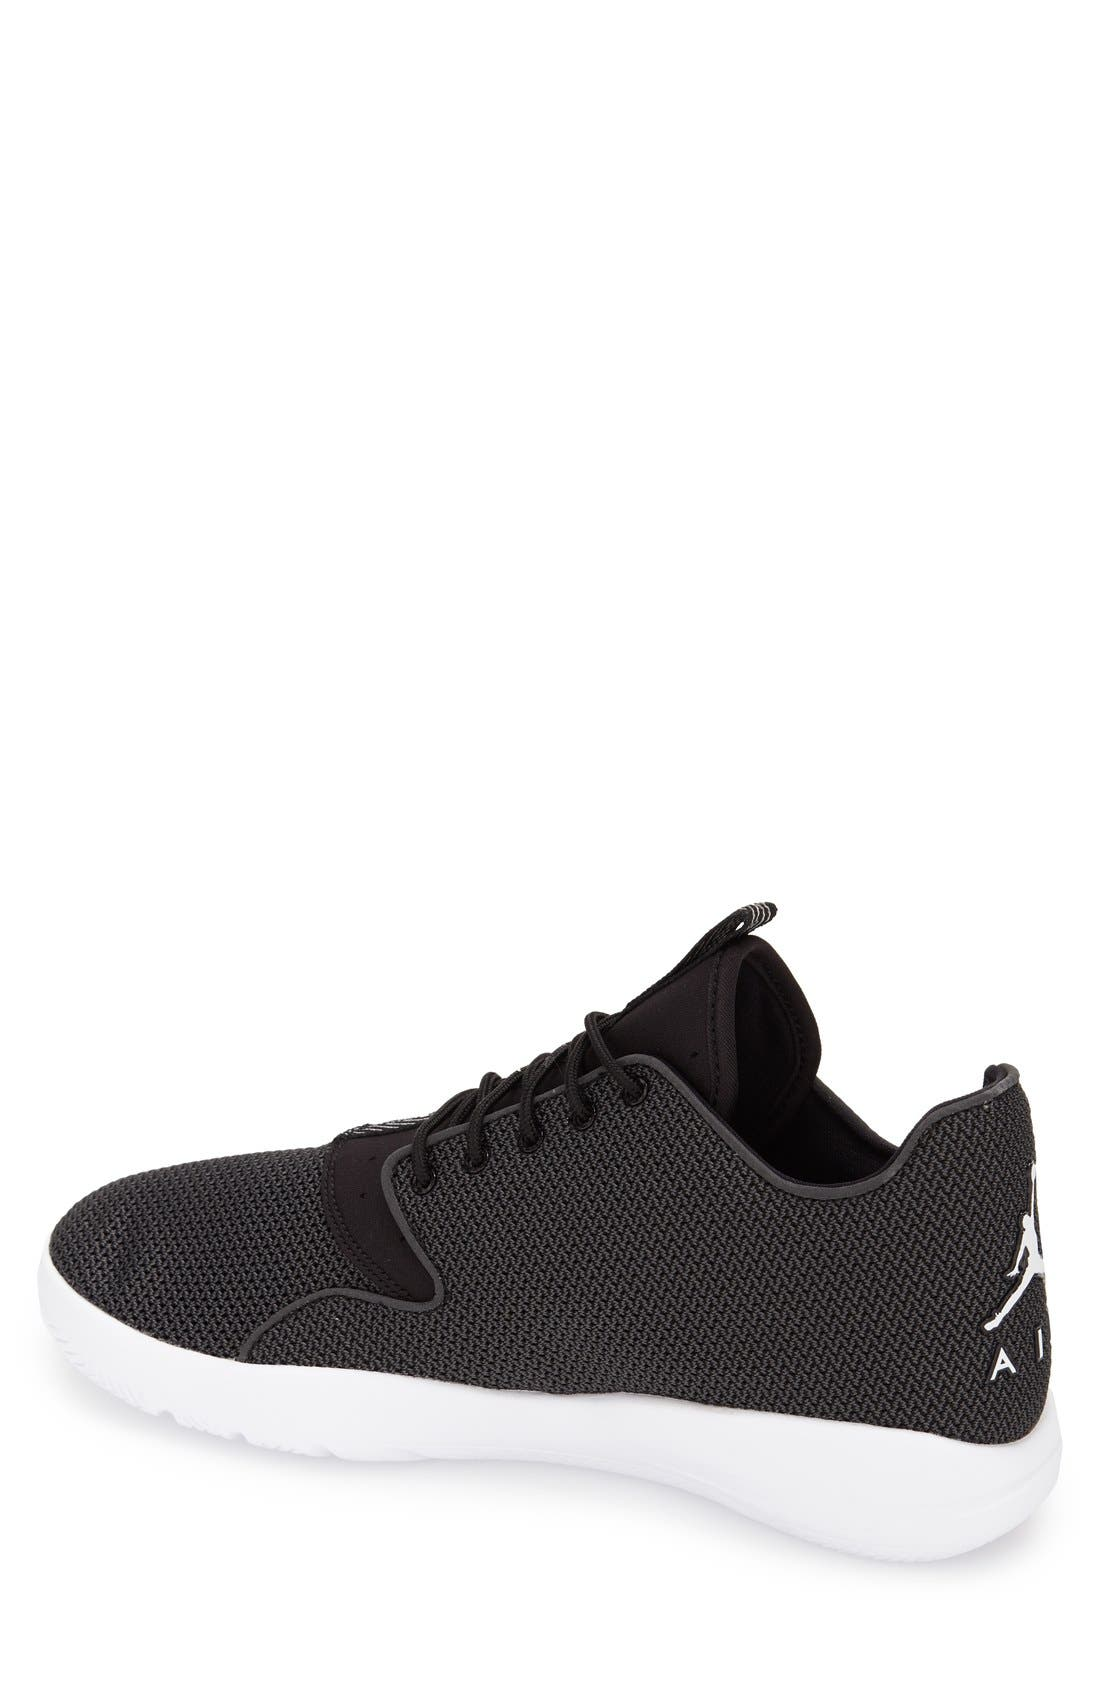 Alternate Image 2  - Nike 'Jordan Eclipse' Sneaker (Men)